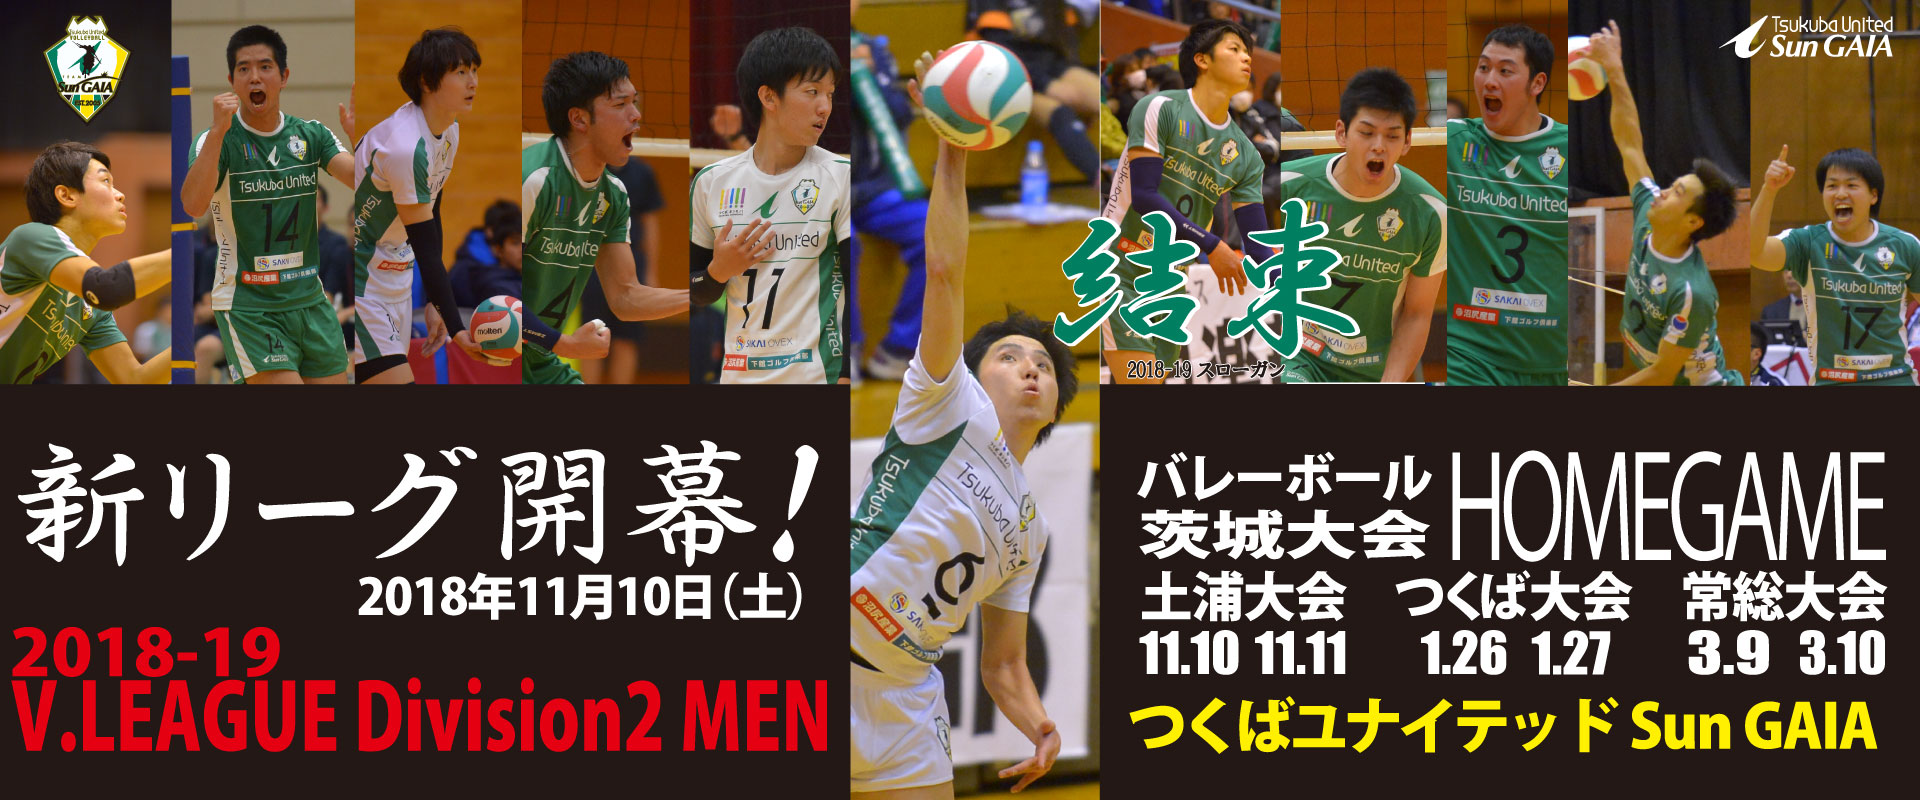 2018-19 VLEAGUE Division2 MEN